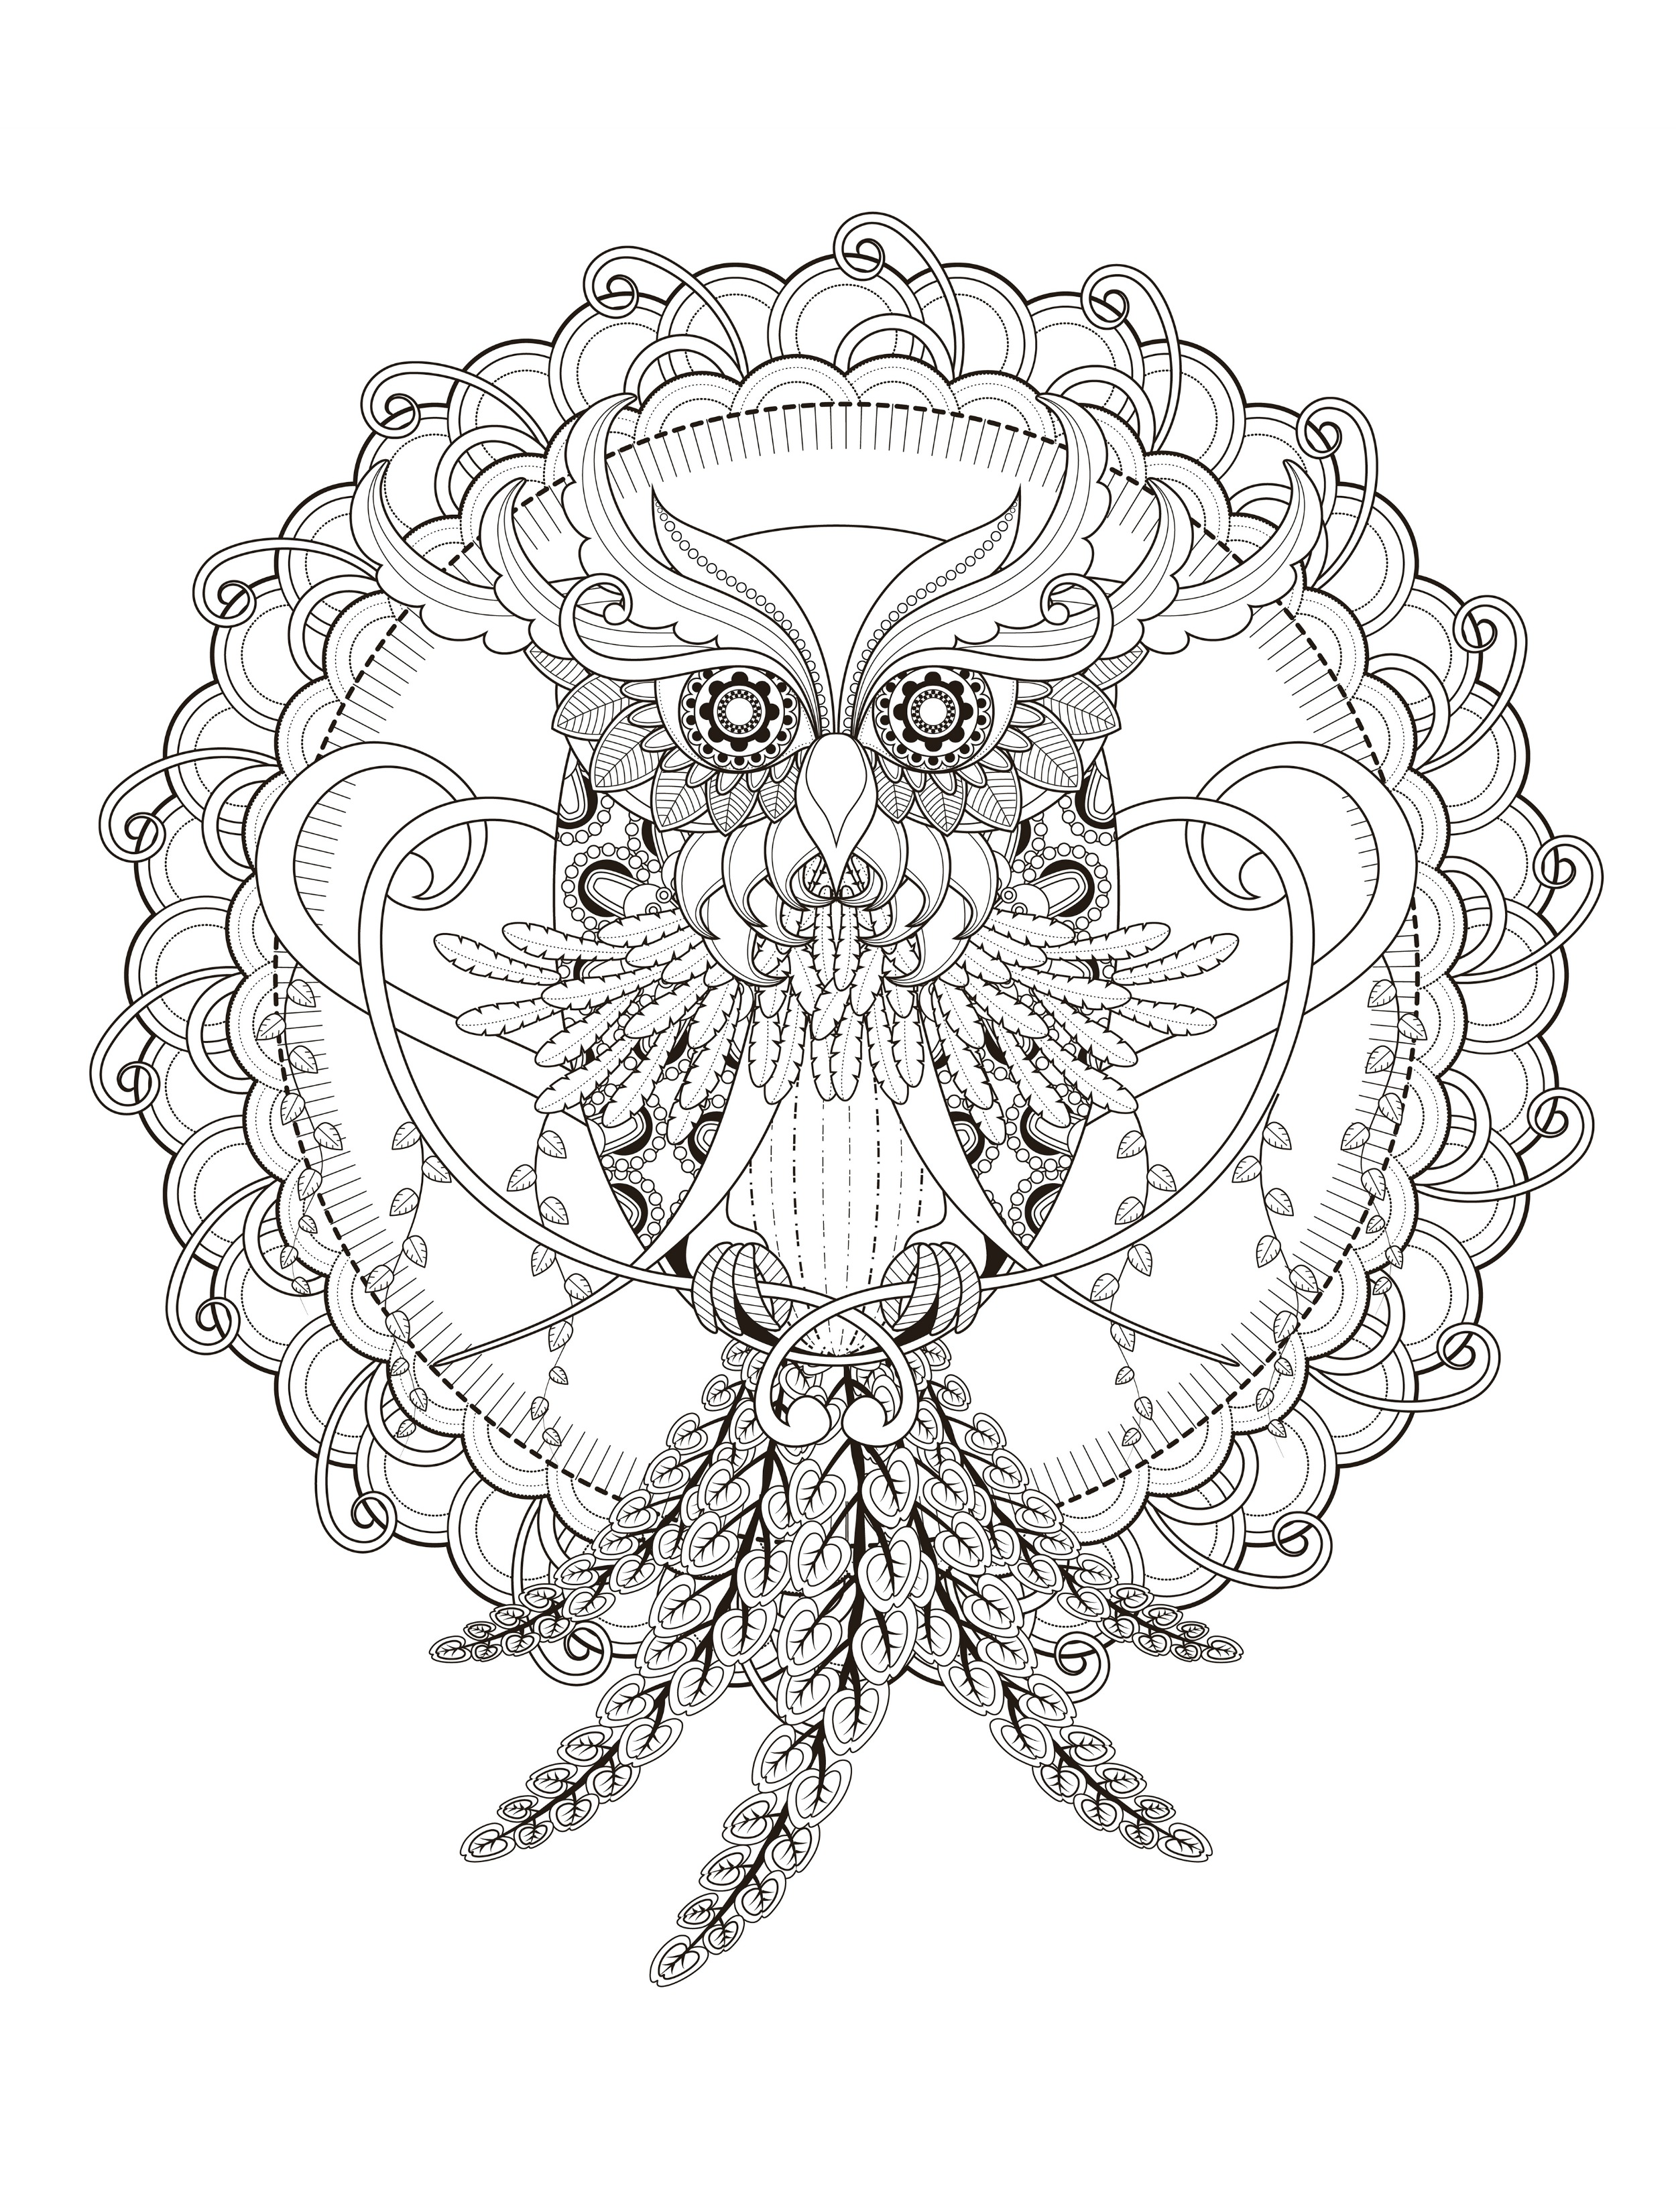 Owl coloring pages free - Print Free Owl Coloring Page For Adults